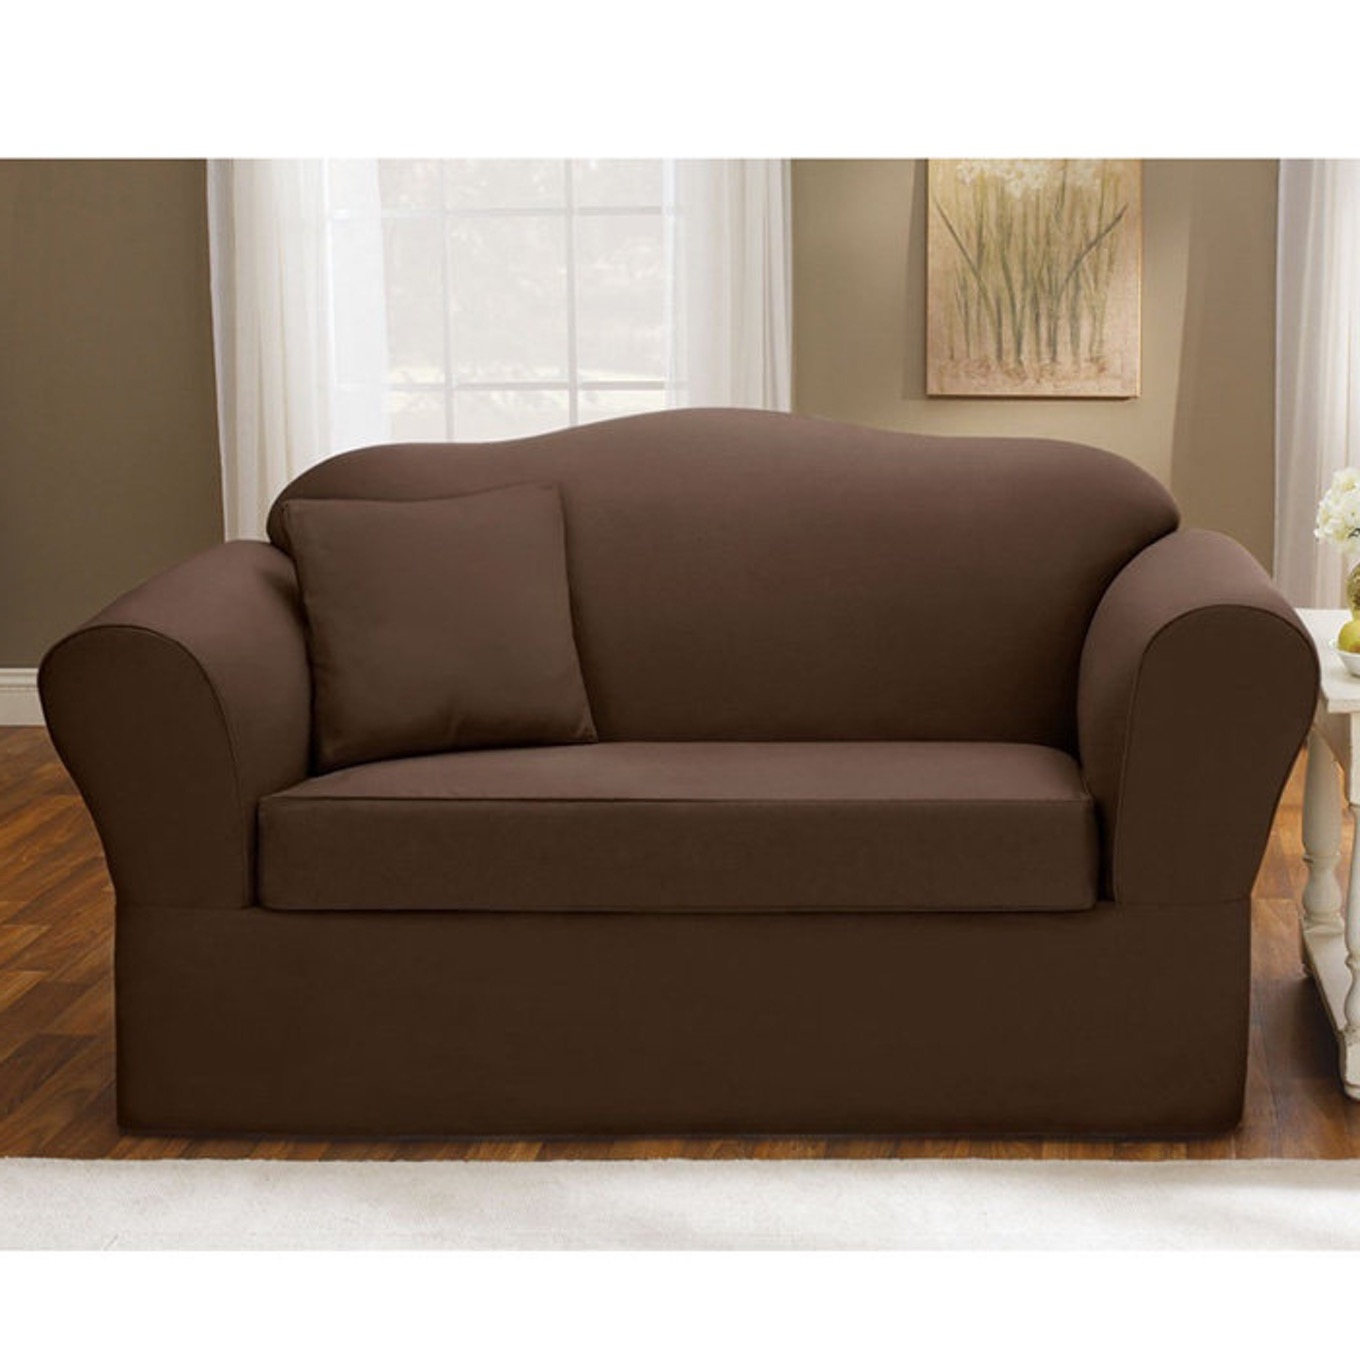 3 Piece Sectional Sofa With Chaise Slipcover Gallery Image With 3 Piece Sectional Sofa Slipcovers (Image 4 of 15)